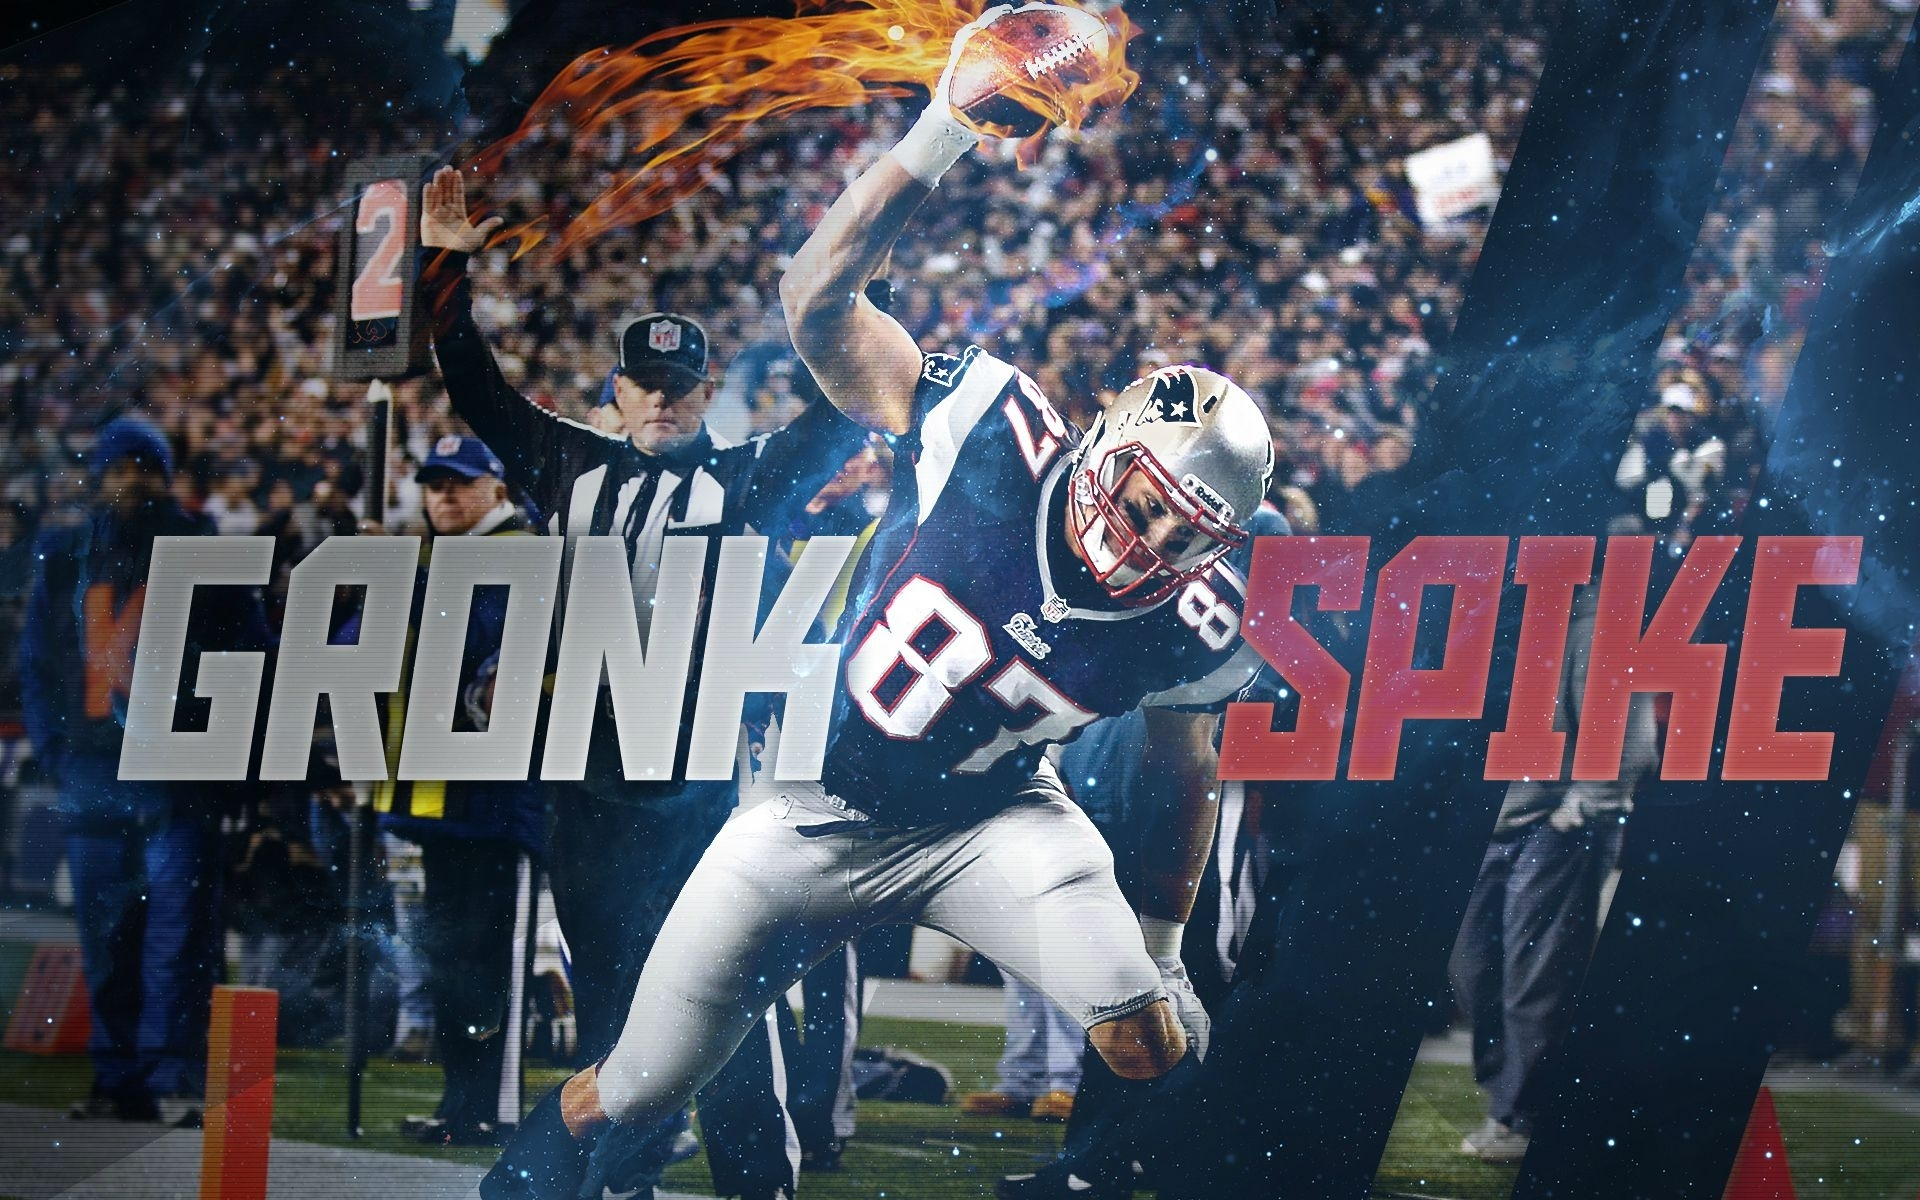 gronk spike - rob gronkowski patriots wallpaper 2015 on behance